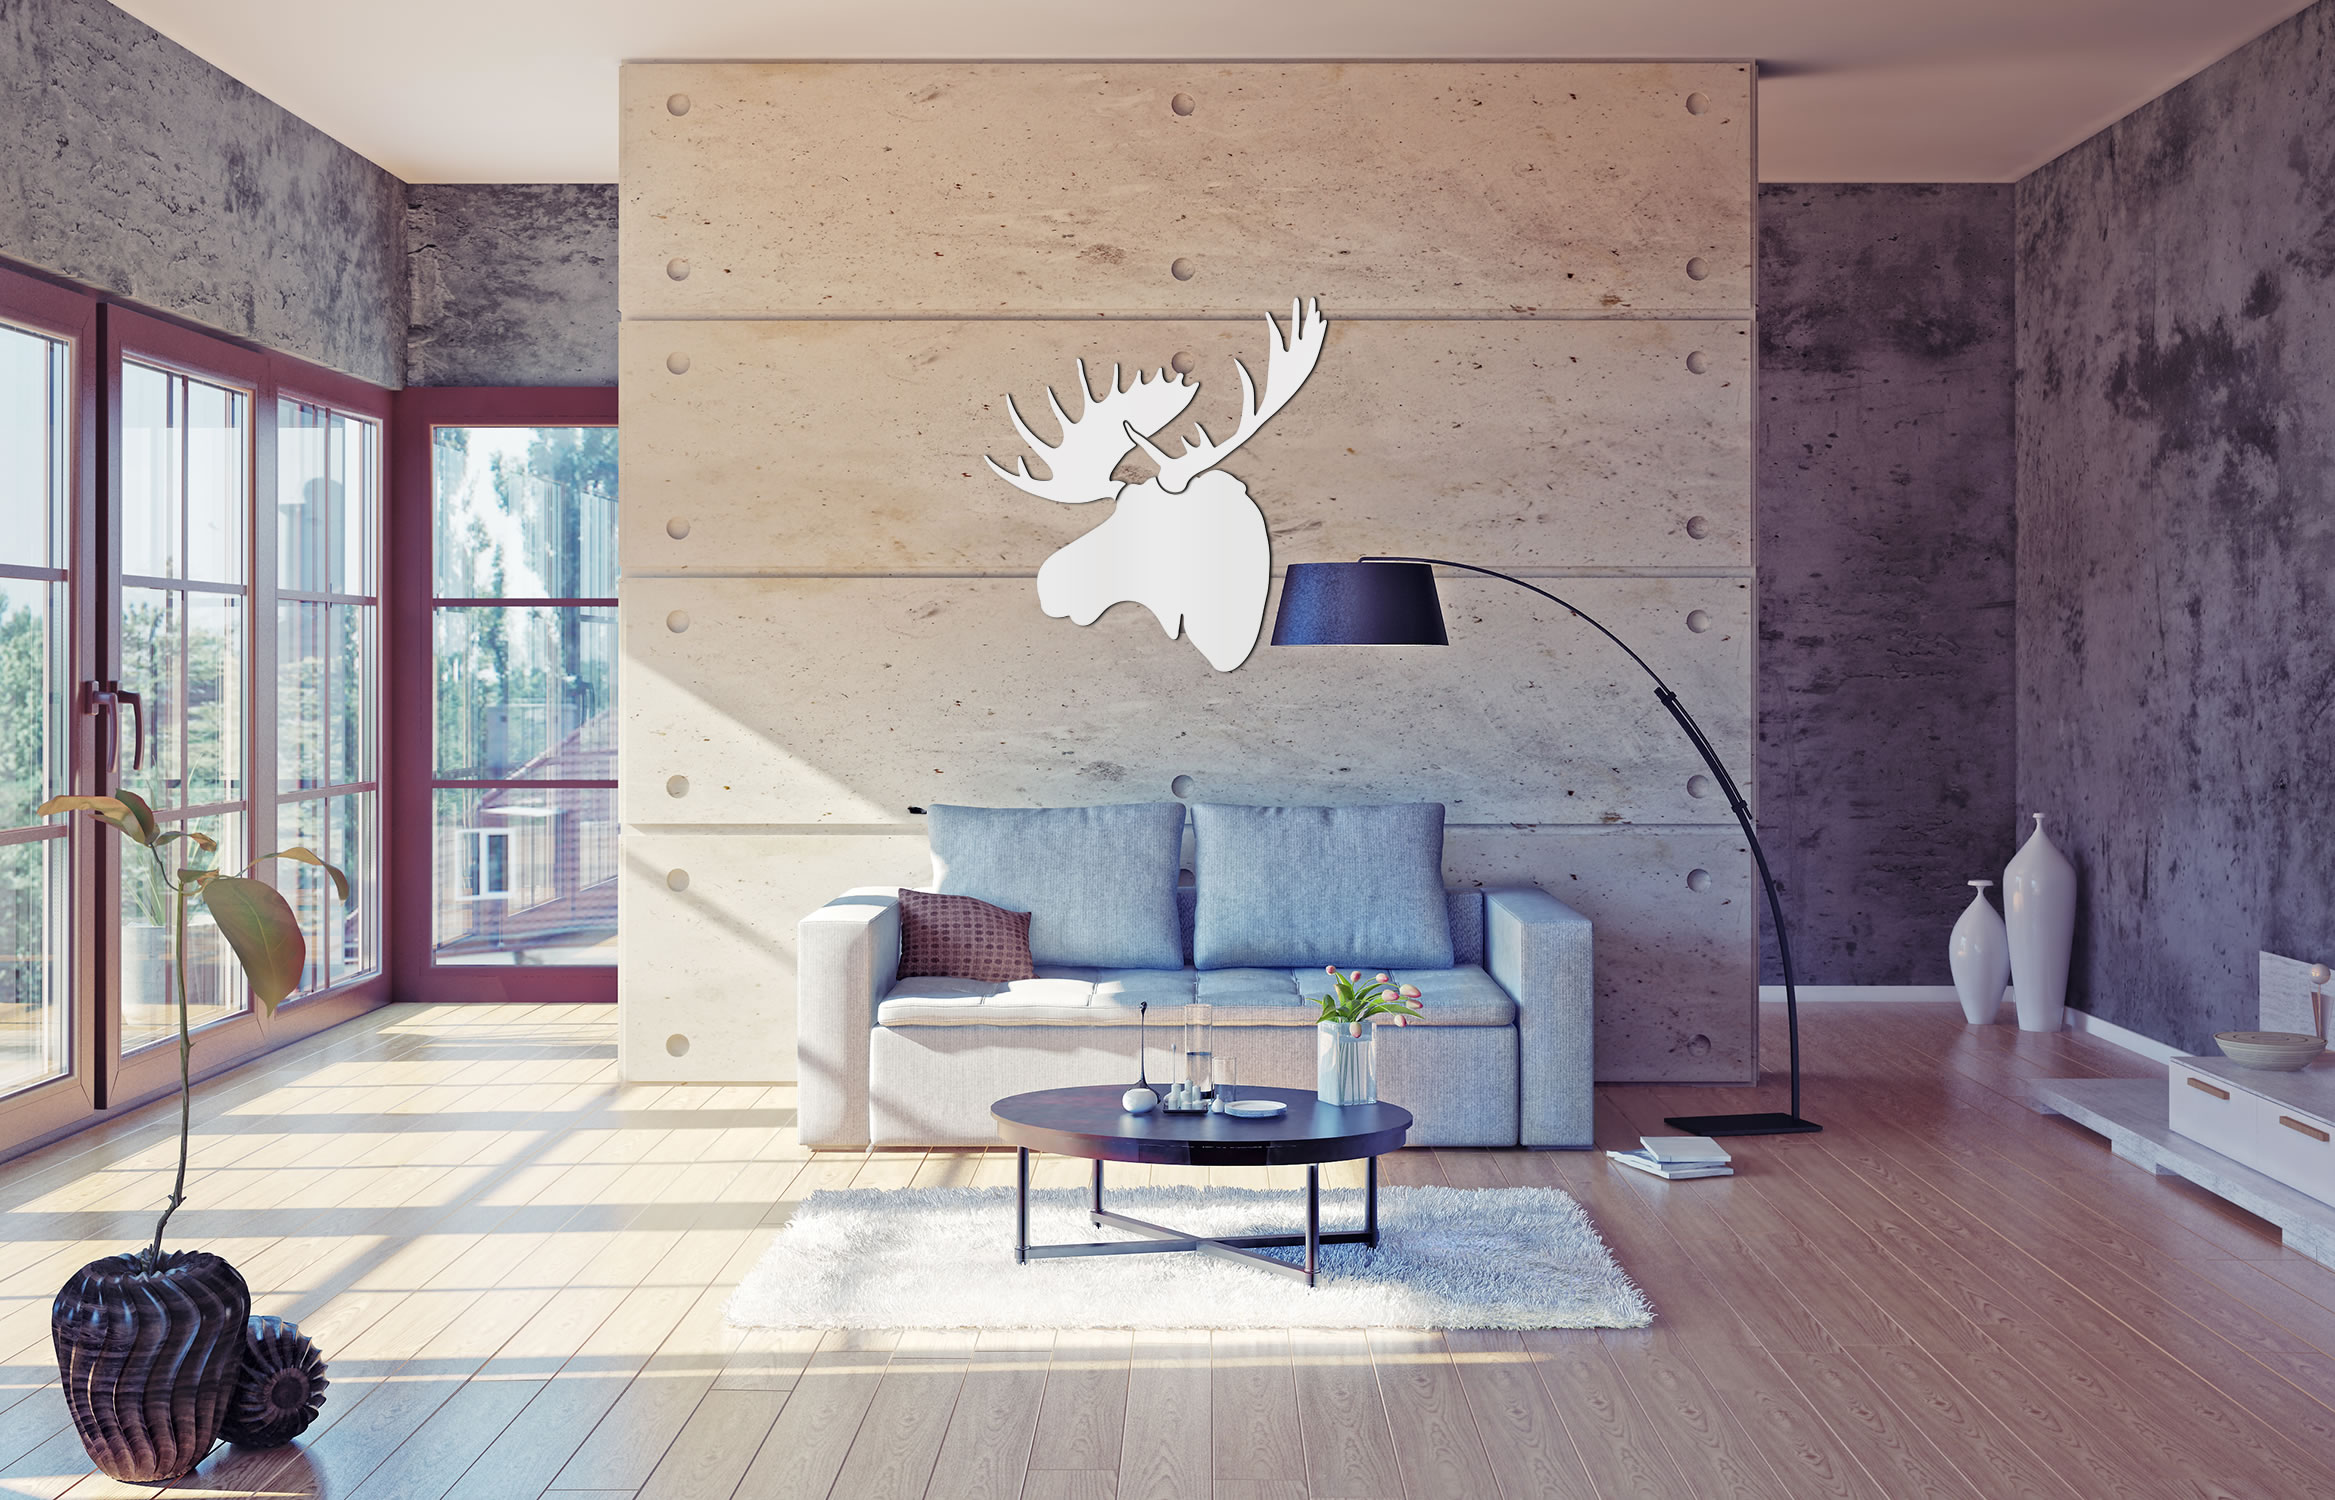 SNOW MOOSE - 36x36 in. Pure White D?cor - Lifestyle Image